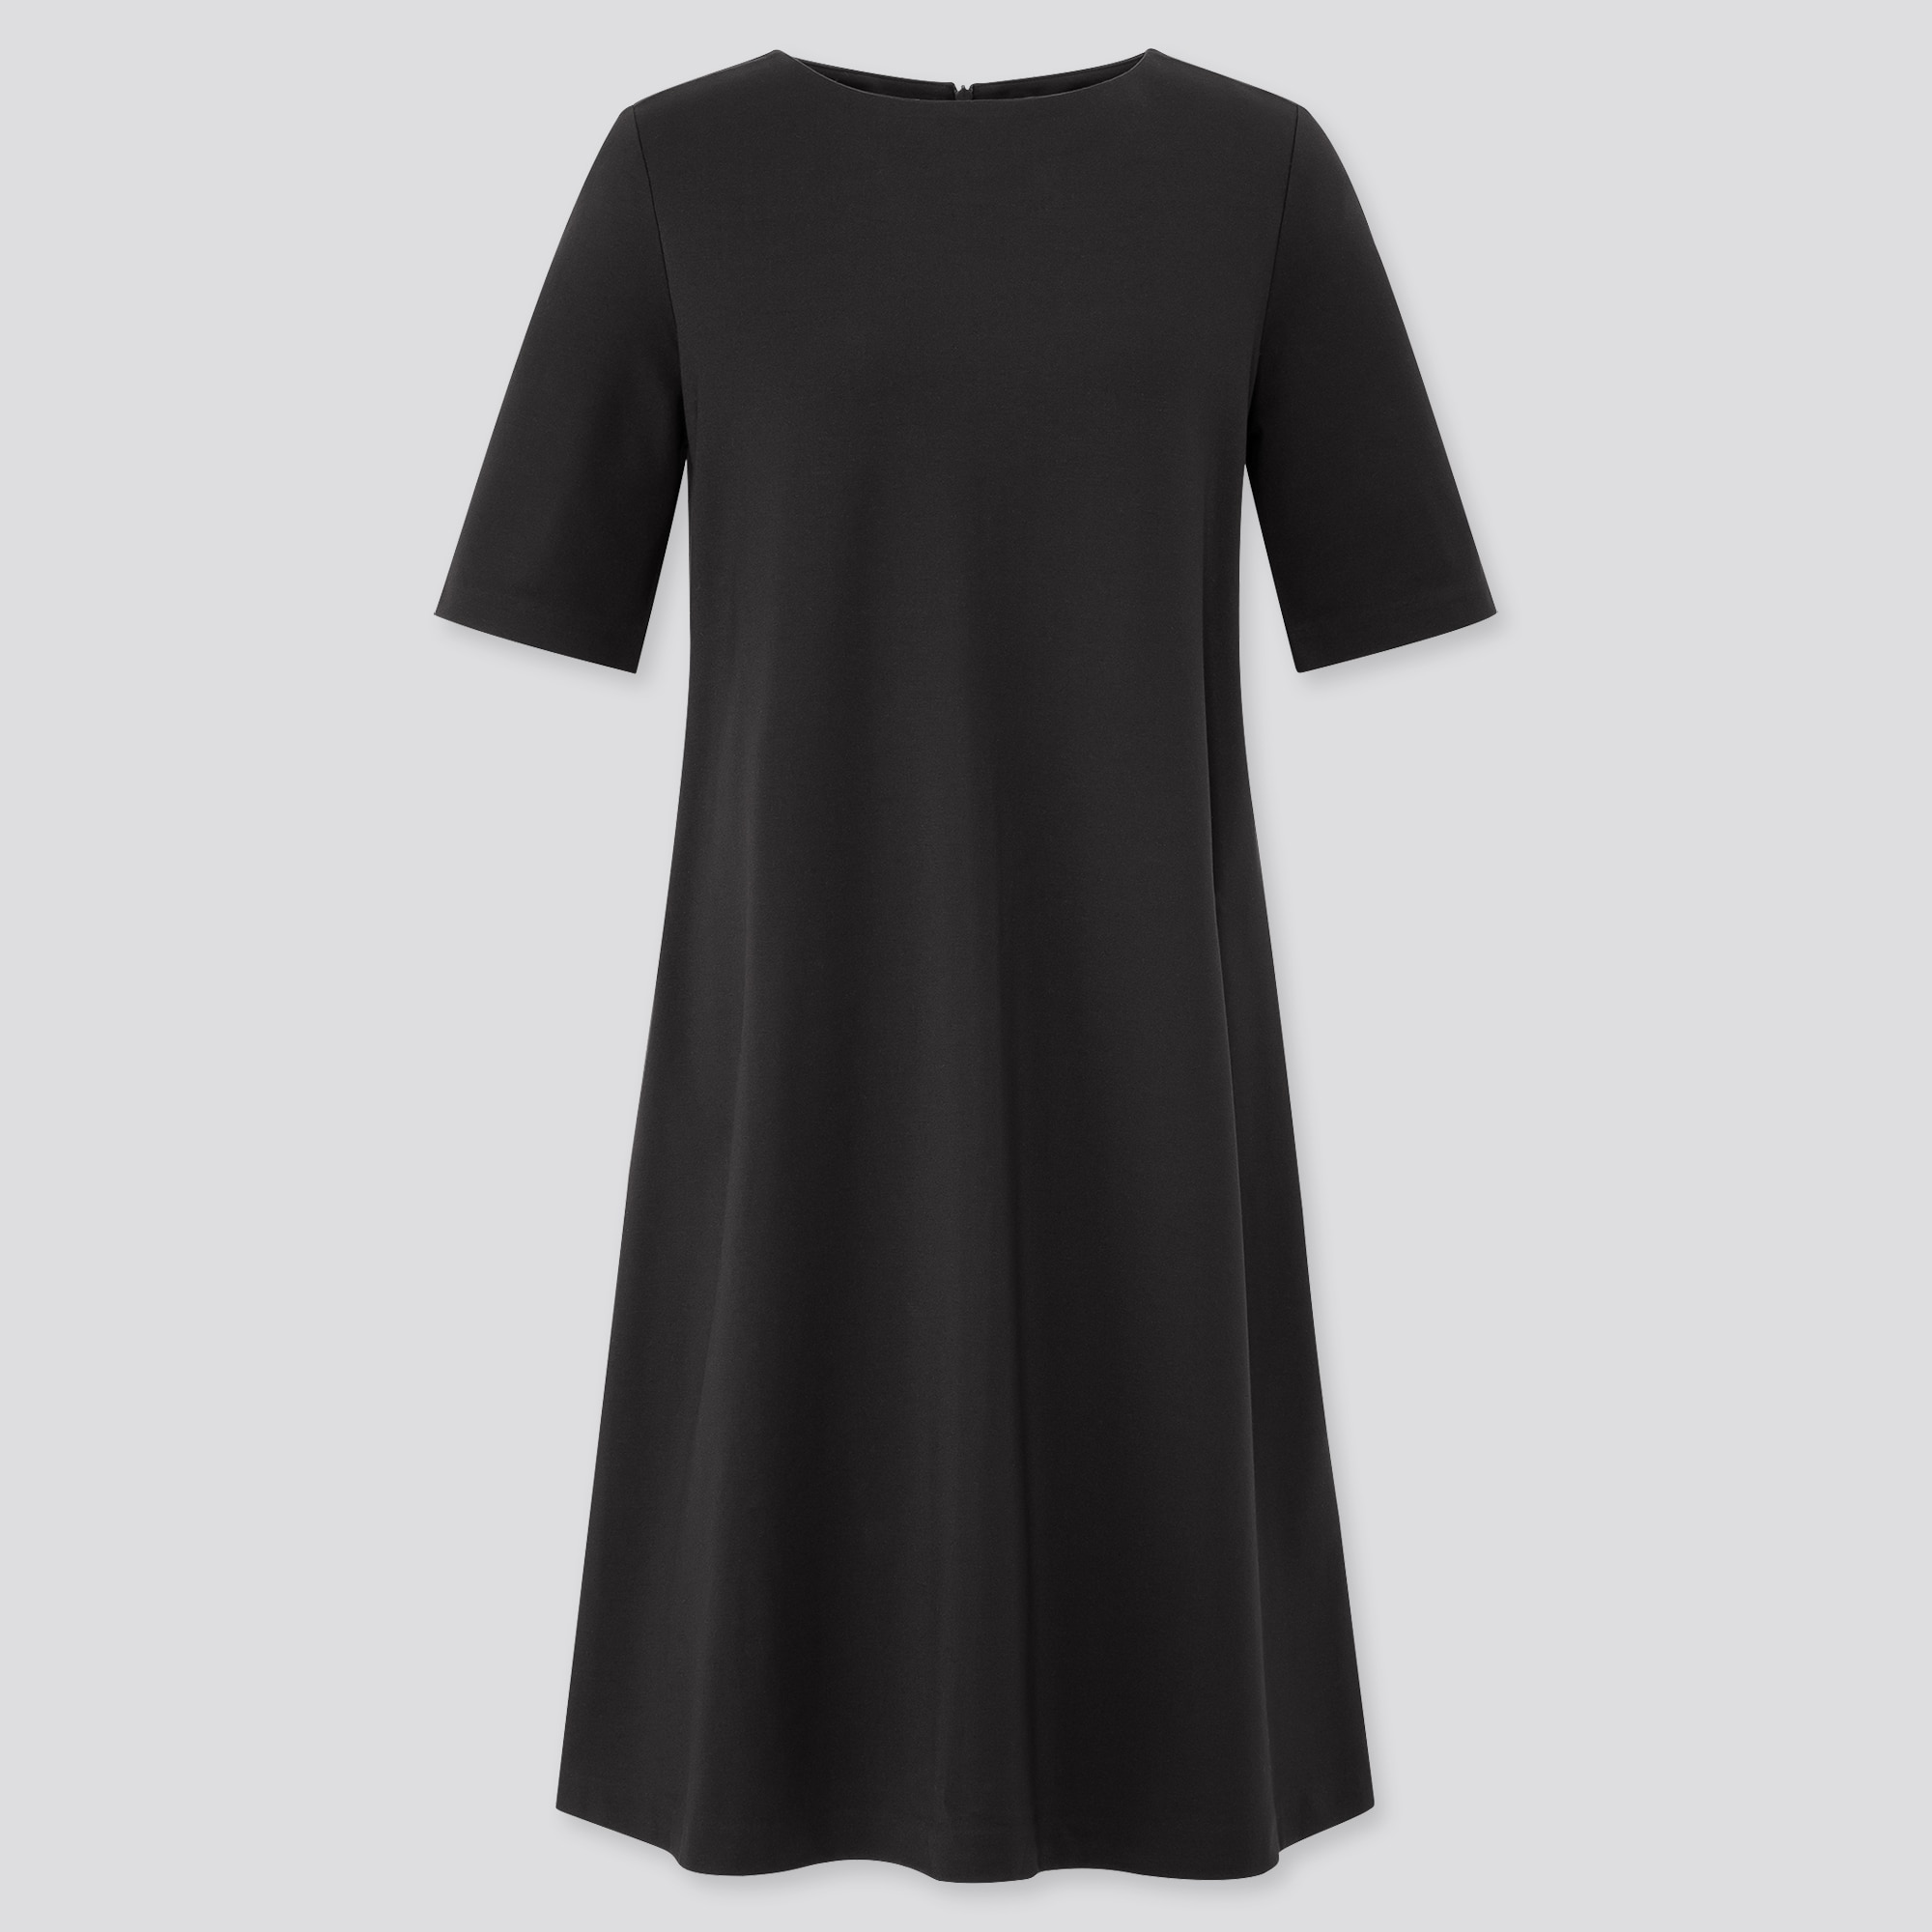 Uniqlo Kleid Where Can I Buy D5305 A0263